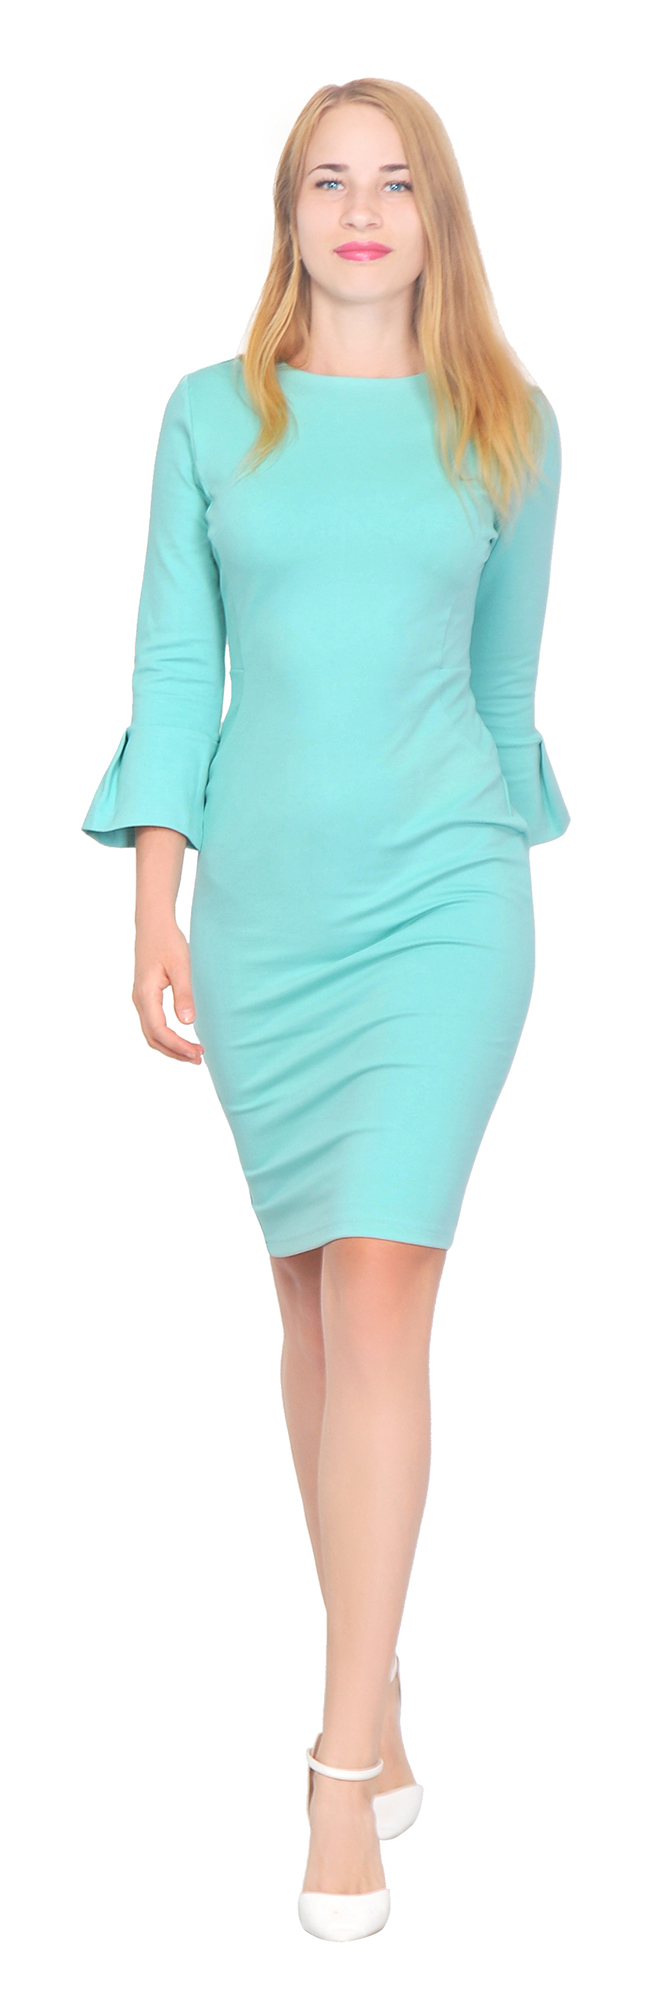 MARYCRAFTS WOMENS FLOUNCE FLARE SLEEVE PENCIL DRESS COCKTAIL FITTED ...